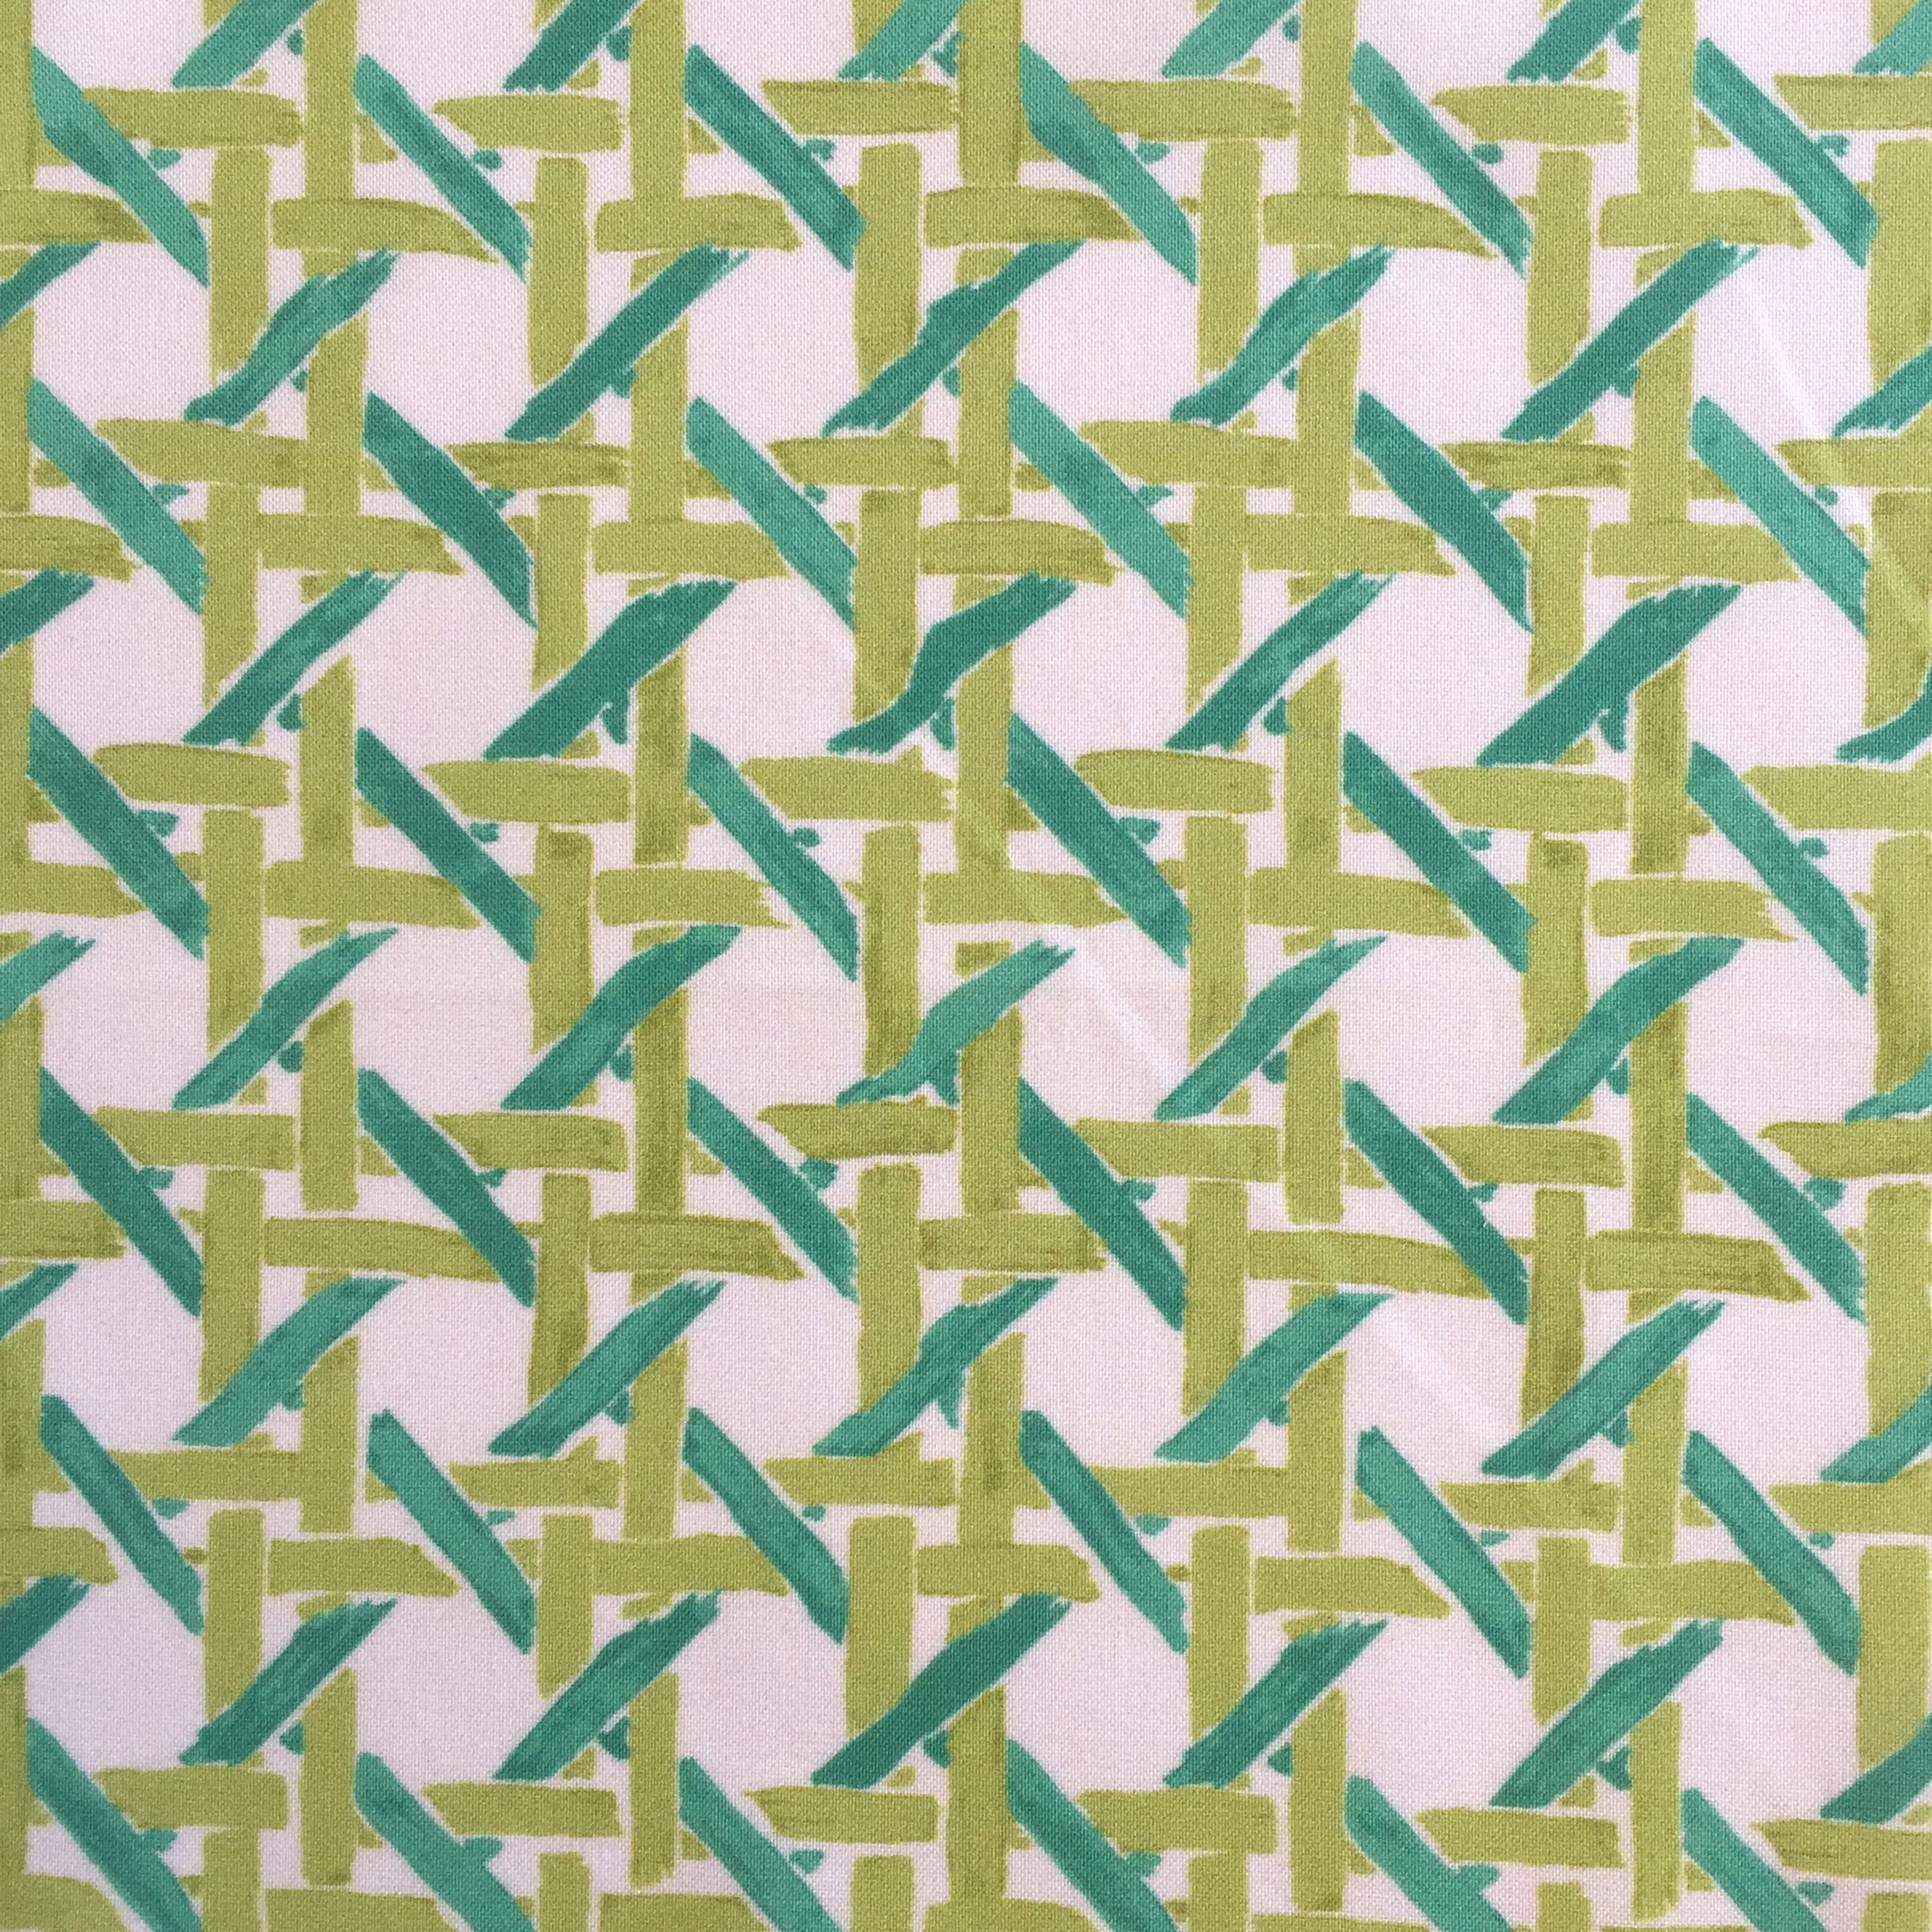 Cane Print in CREAM/JADE  PALM SPRINGS COLLECTION